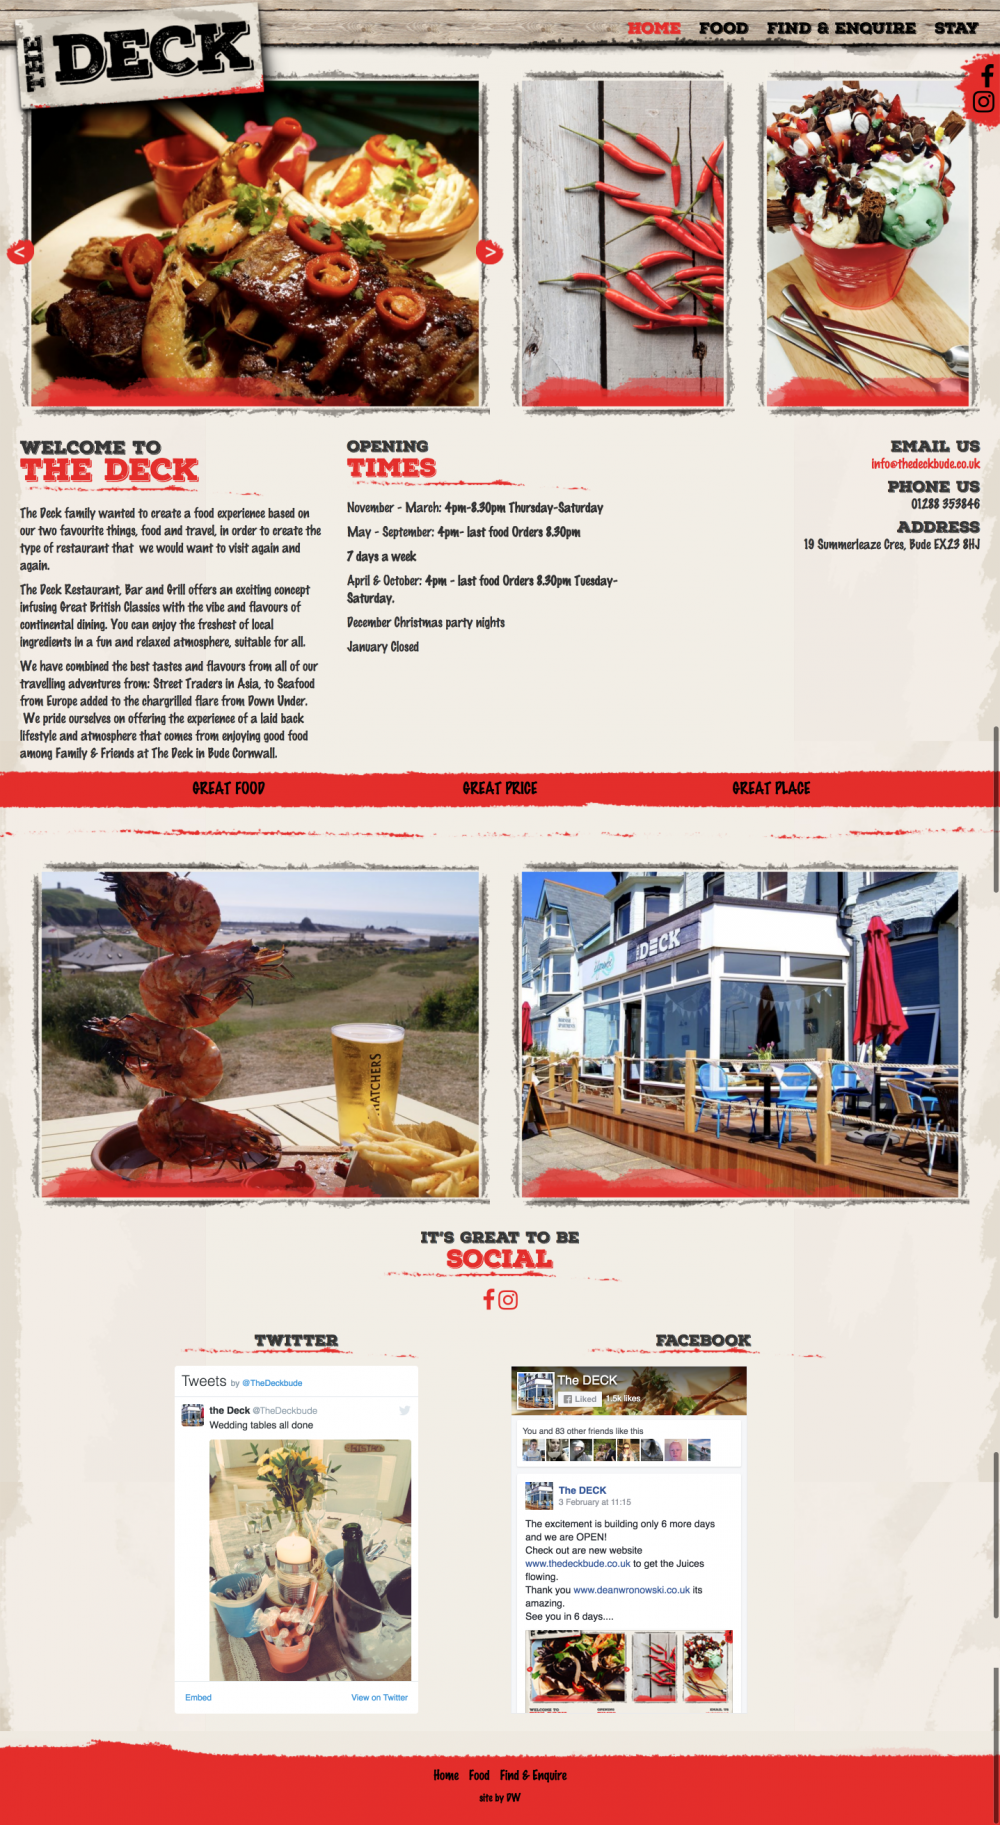 North cornwall website design for the deck in bude this is the north cornwall website design for the deck in bude baanklon Choice Image